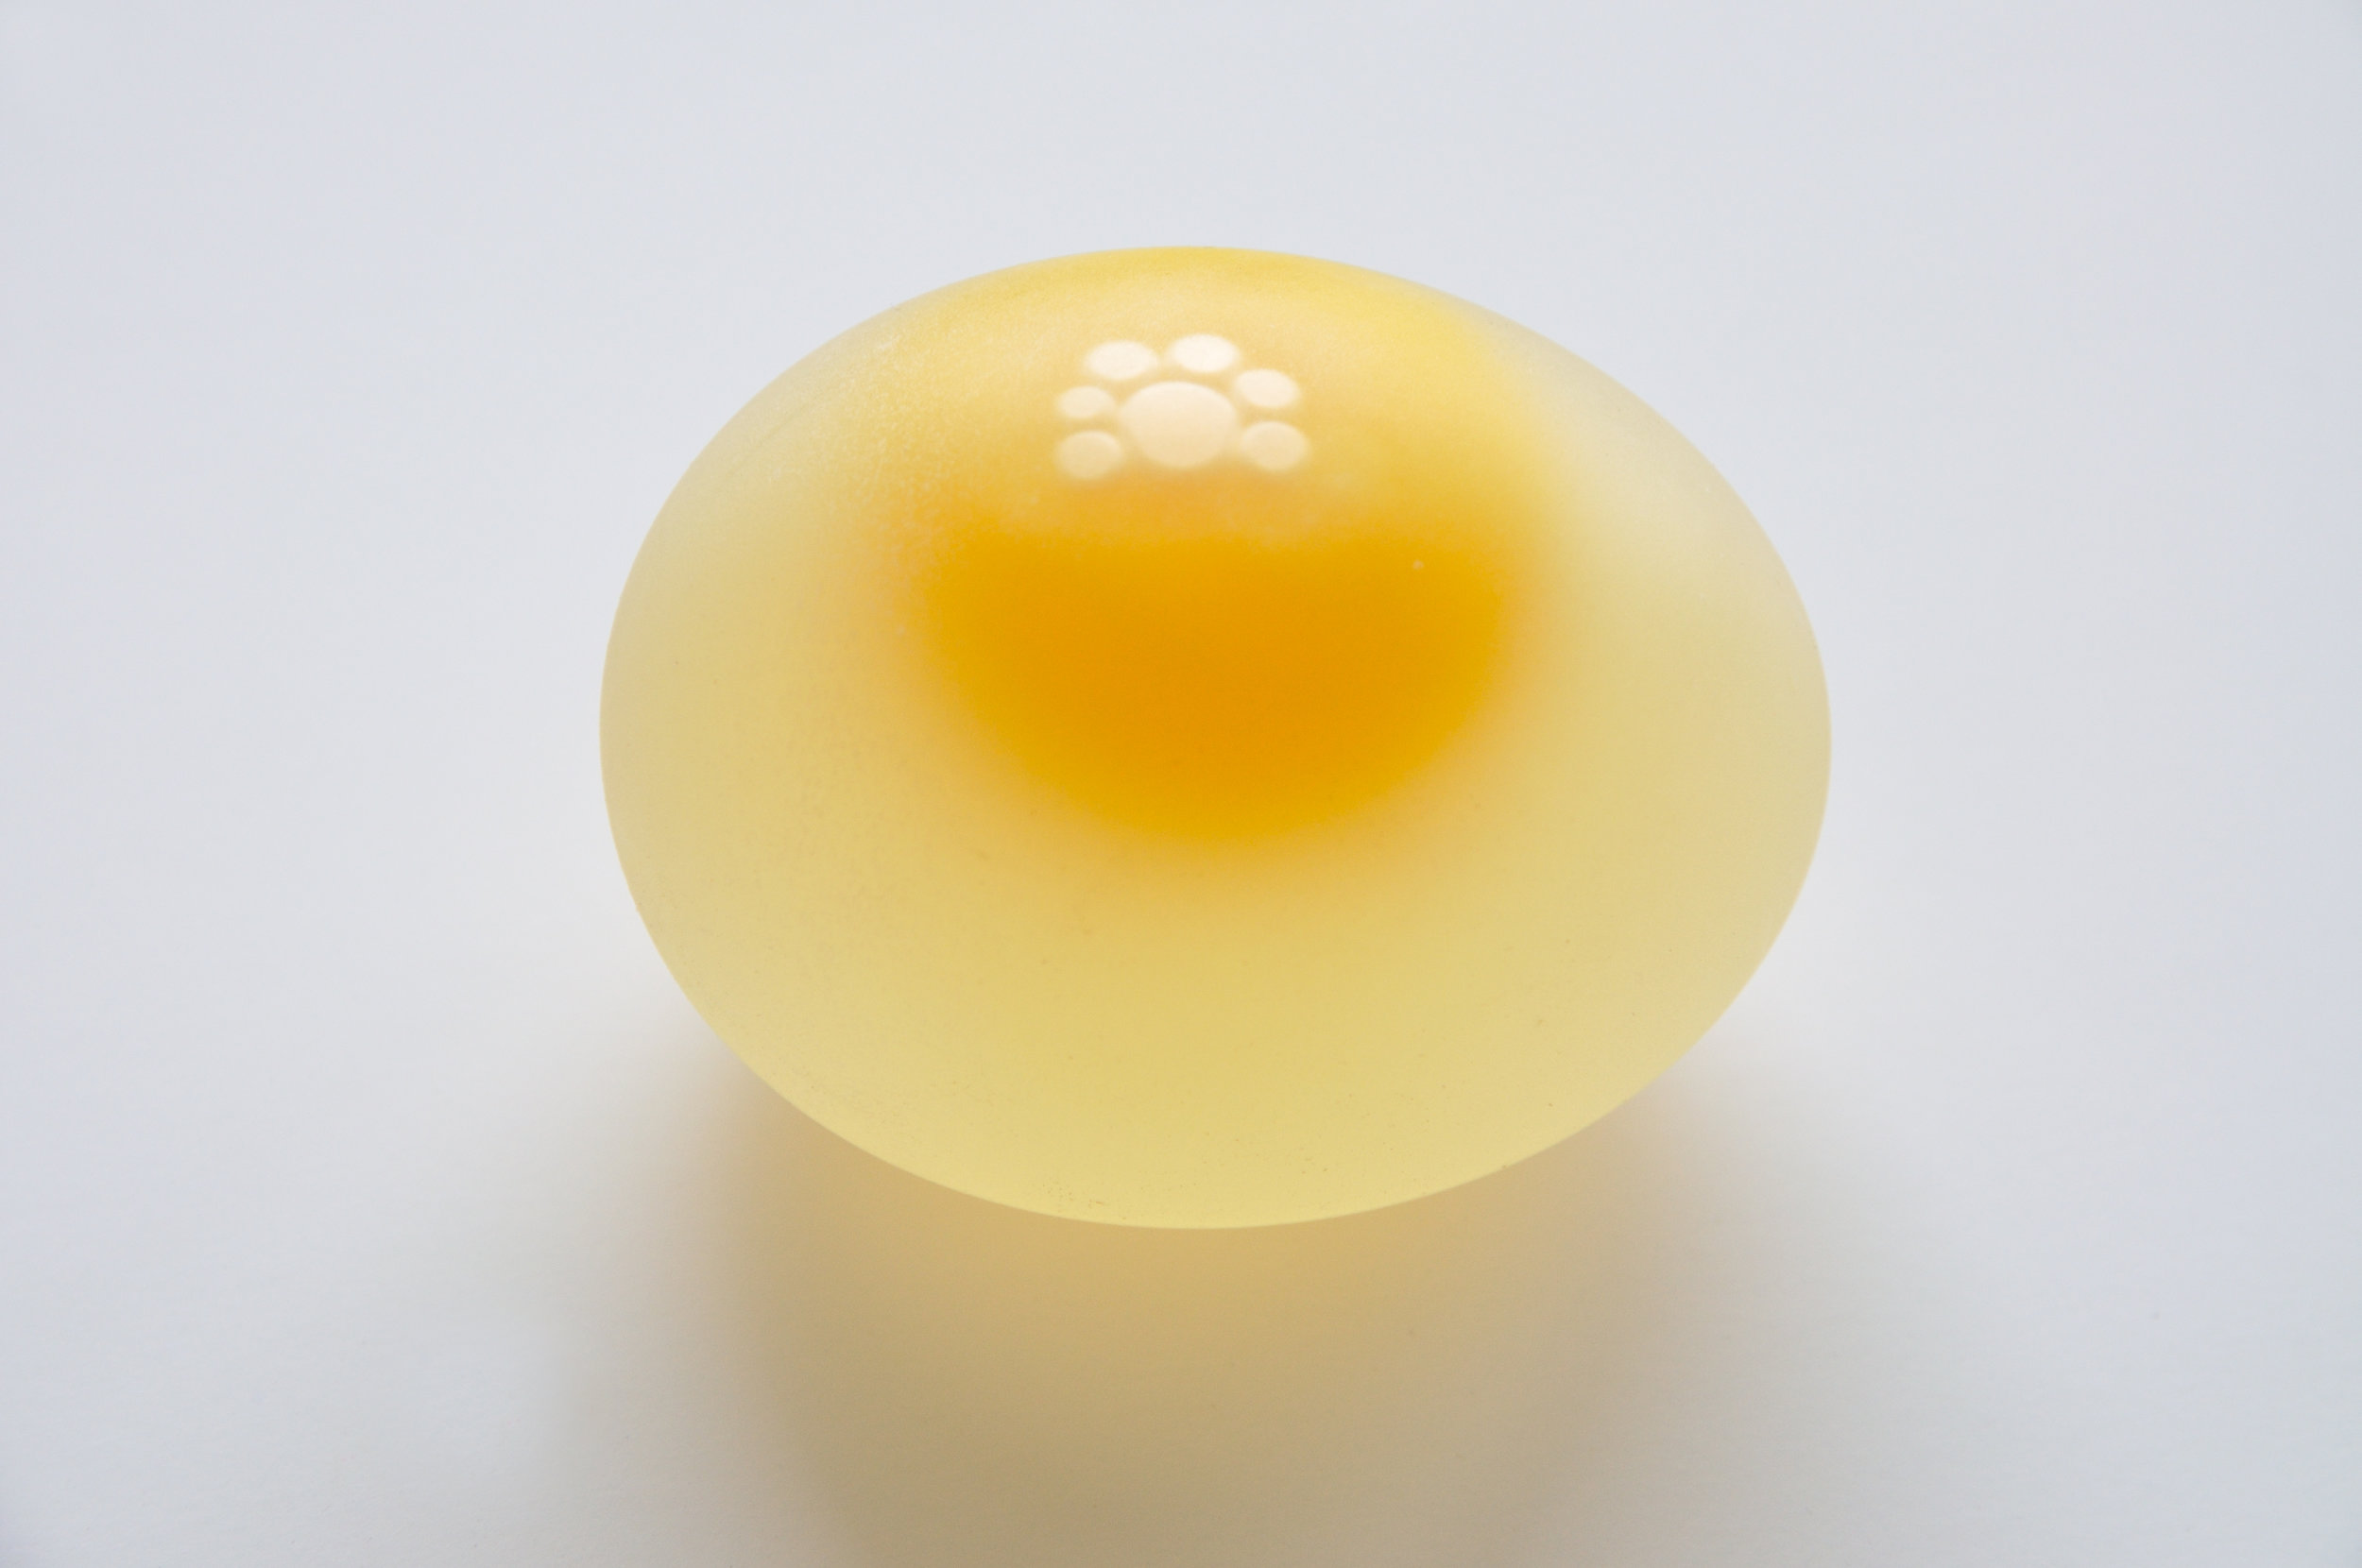 Eggs, even super creepy shell-less ones like this, are full of phosphatidylcholine.